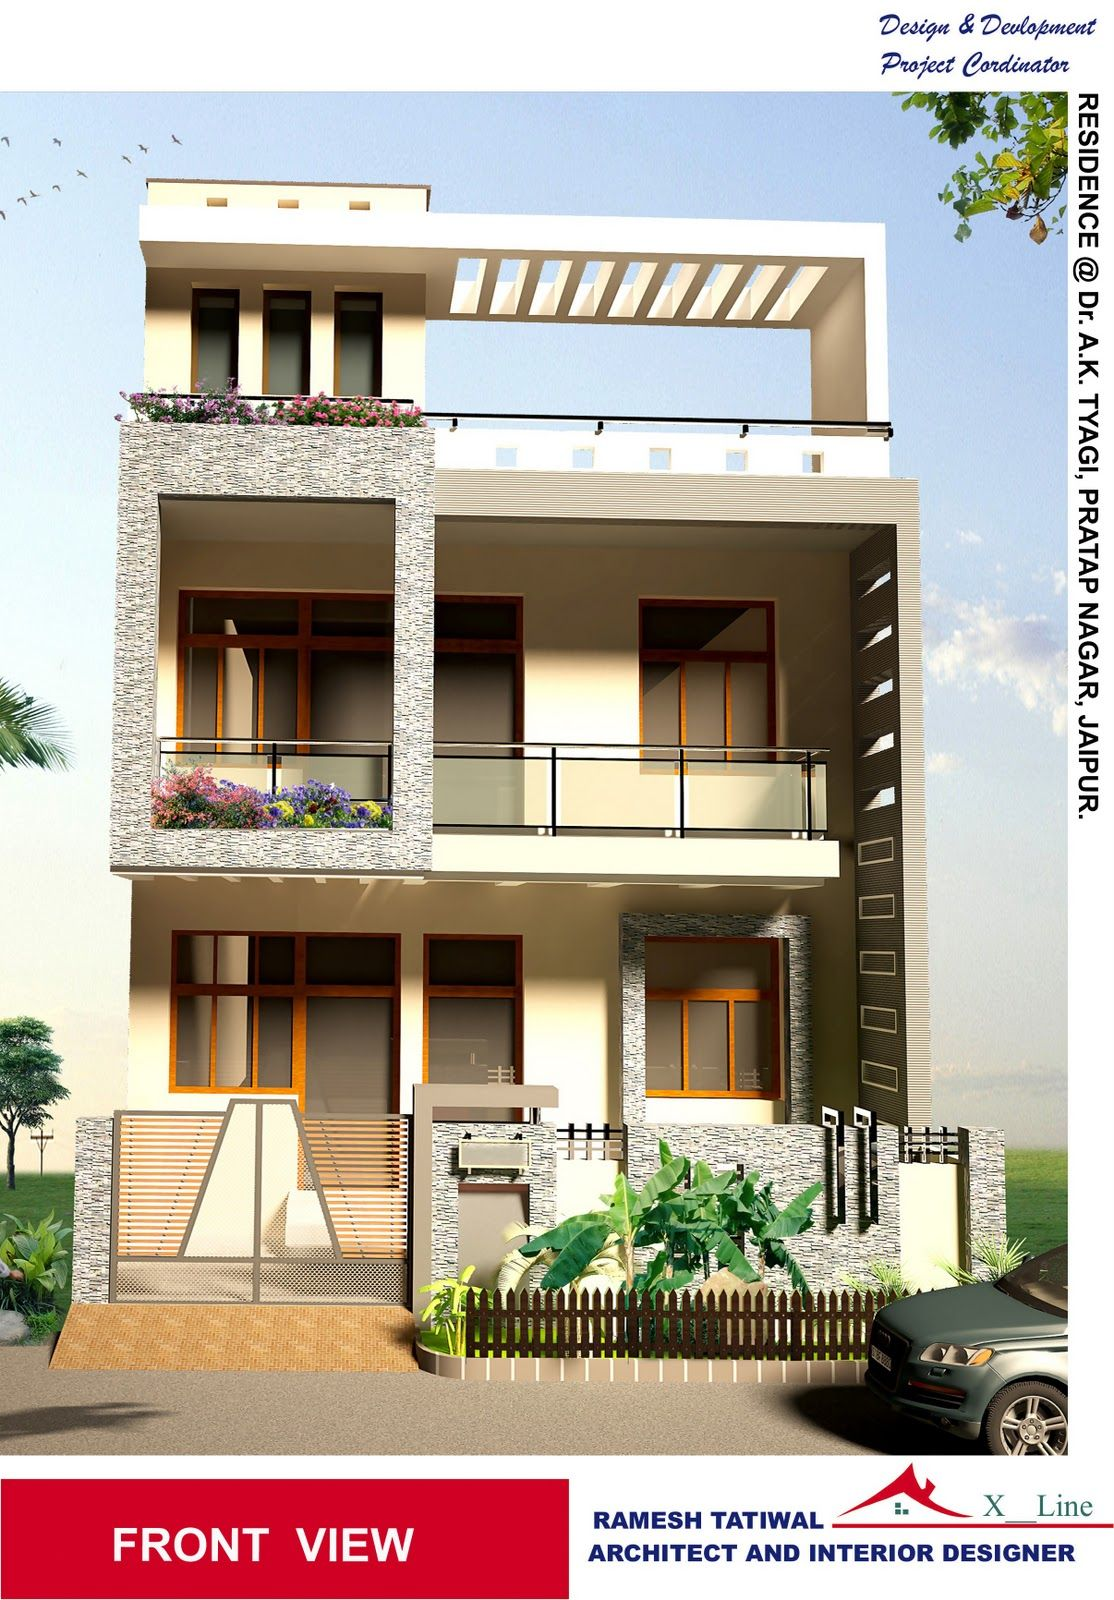 Home design house modern house for The house designers